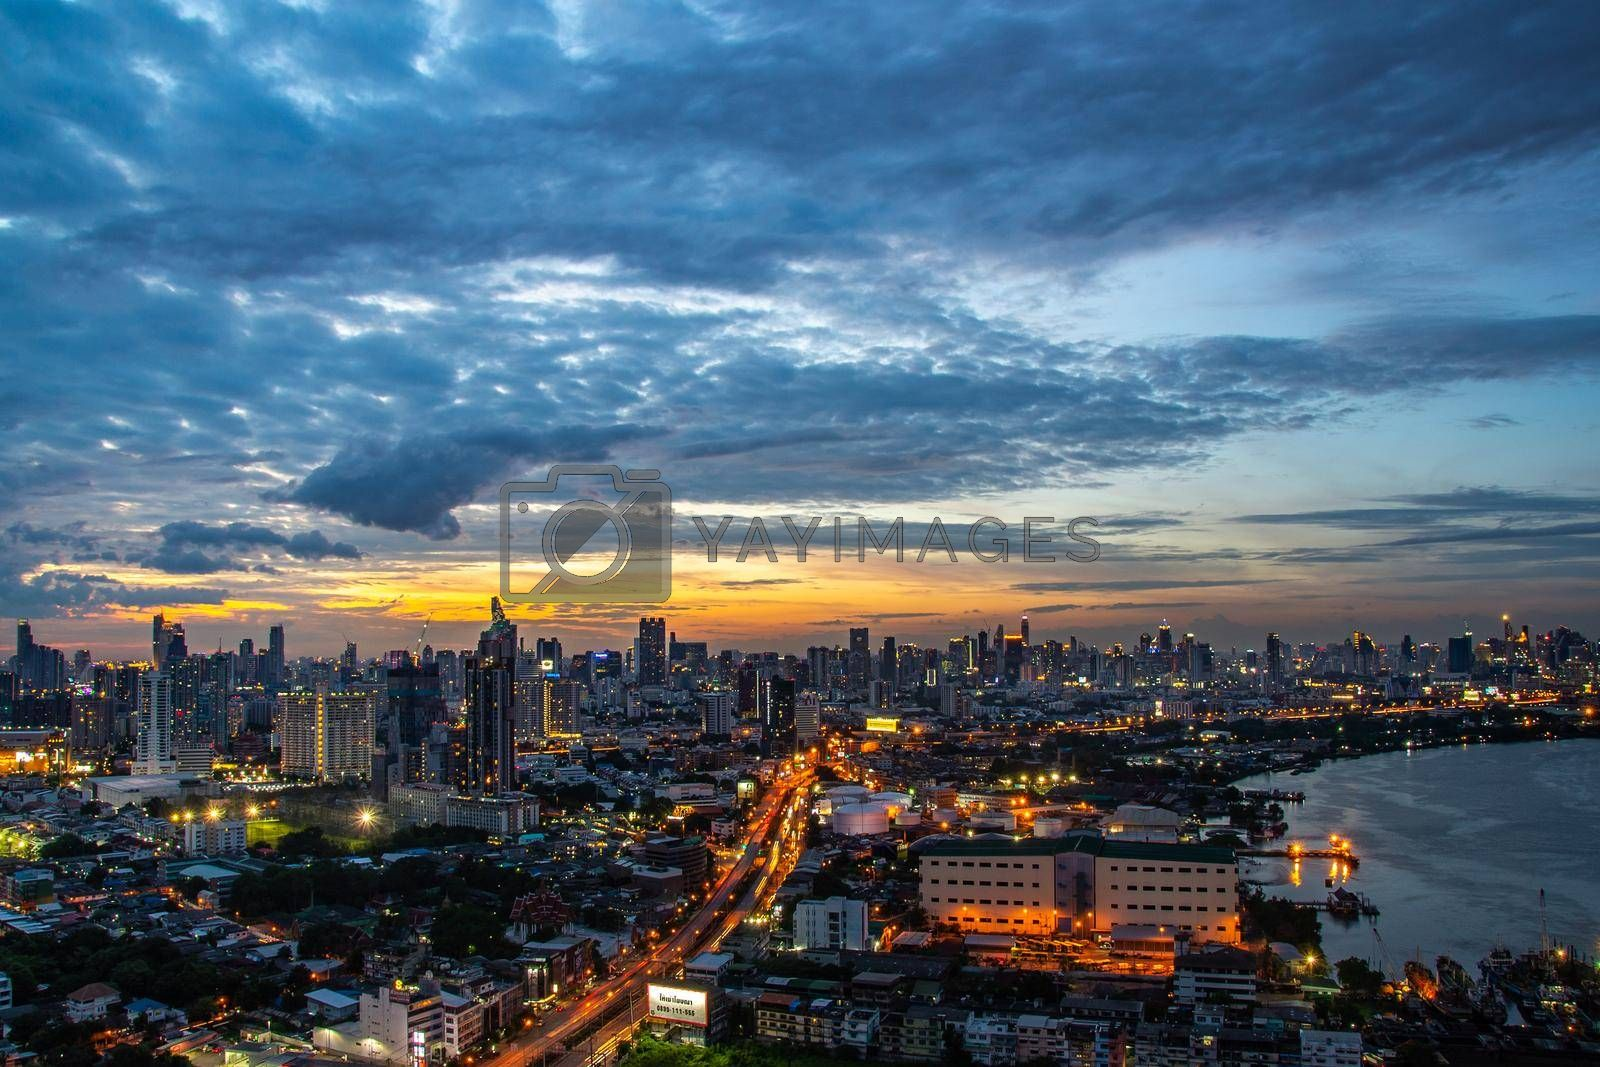 bangkok,Thailand - jul 6, 2019 : Sky view of Bangkok with skyscrapers in the business district in Bangkok along the Chao Phraya Rive in the during beautiful twilight give the city a modern style.